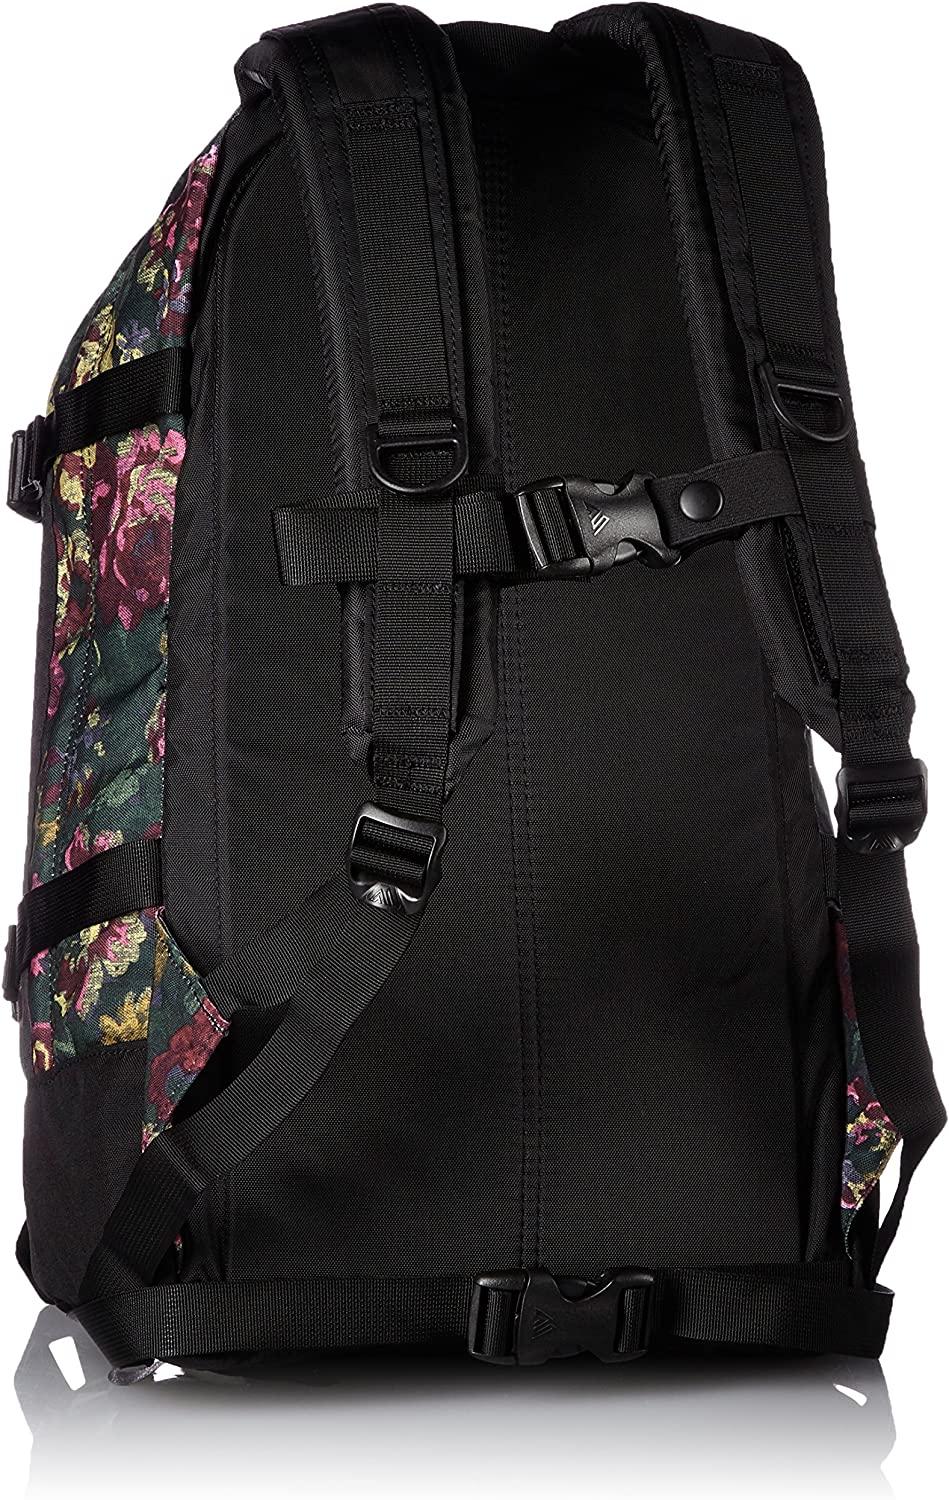 AllDay Japan Official Backpack Daypack Japan Import Gregory